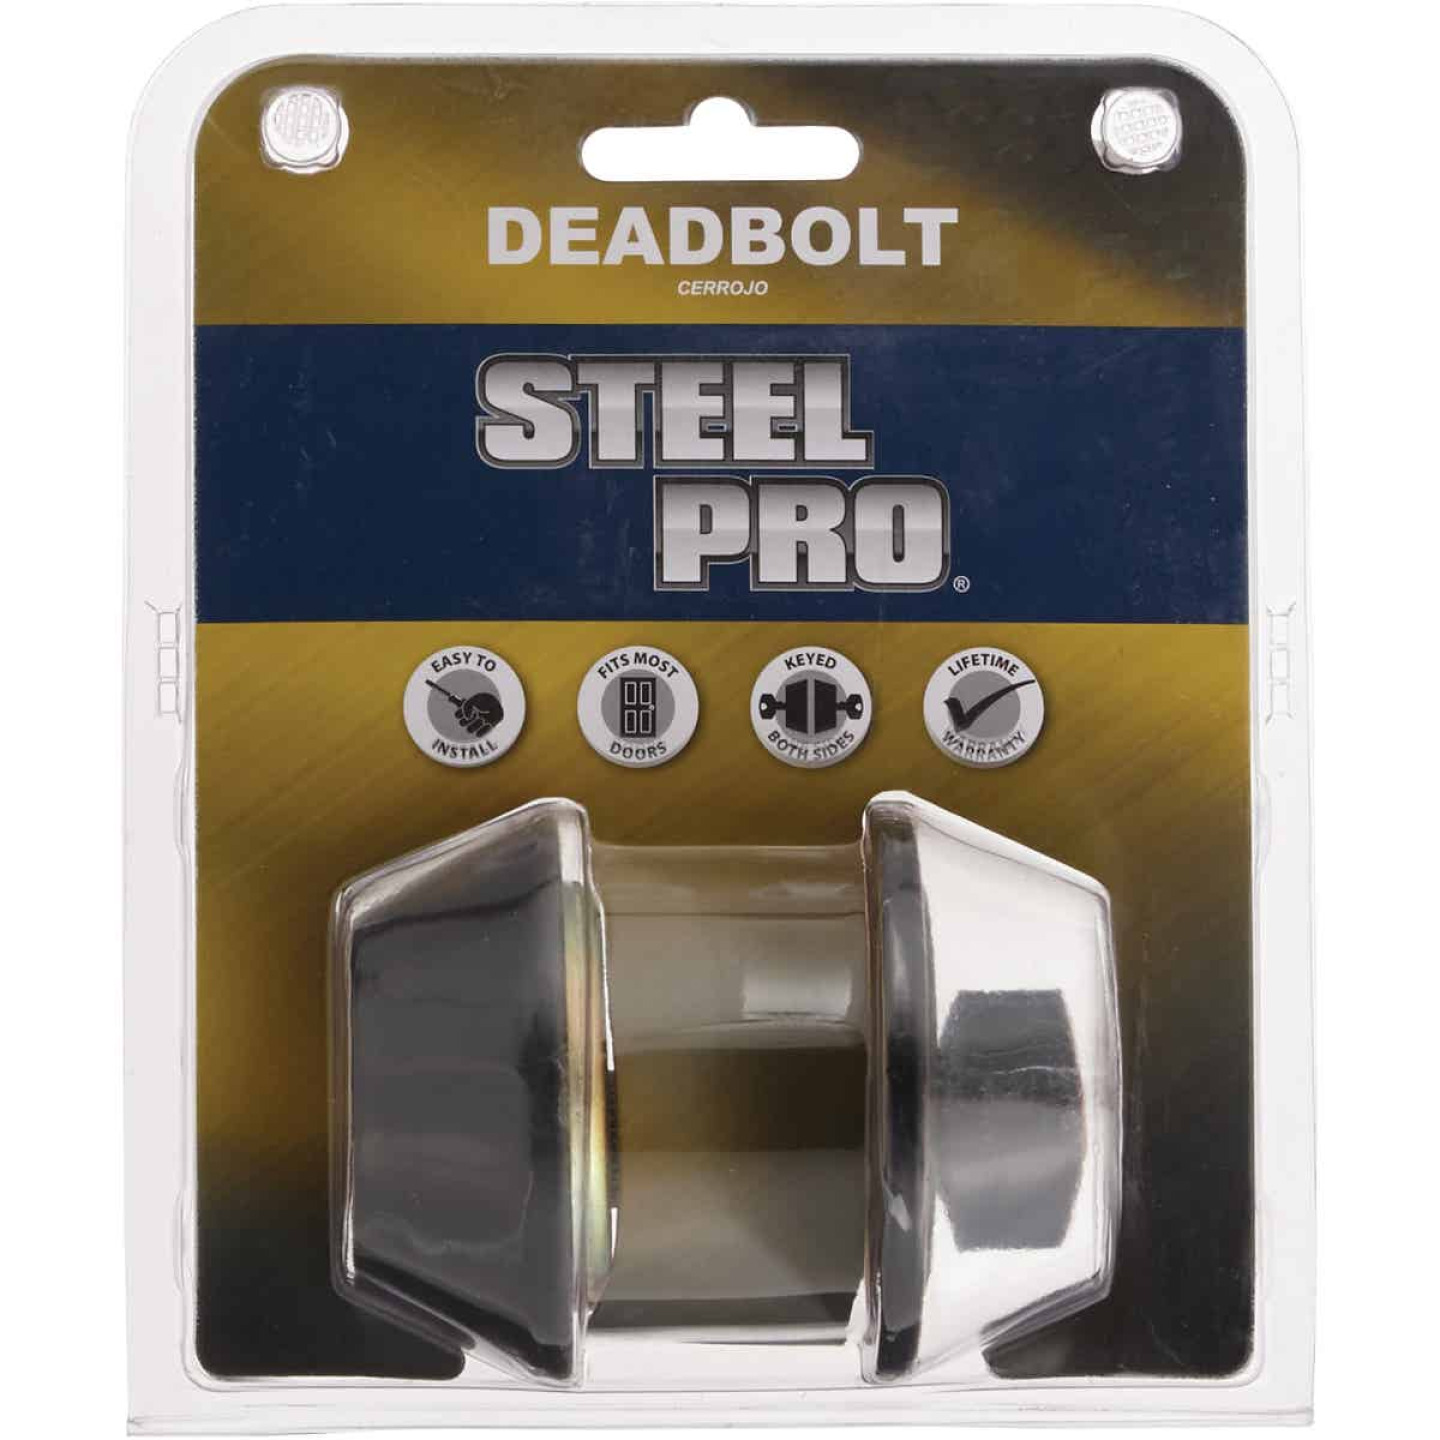 Steel Pro Oil Rubbed Bronze Single Cylinder Deadbolt Image 2